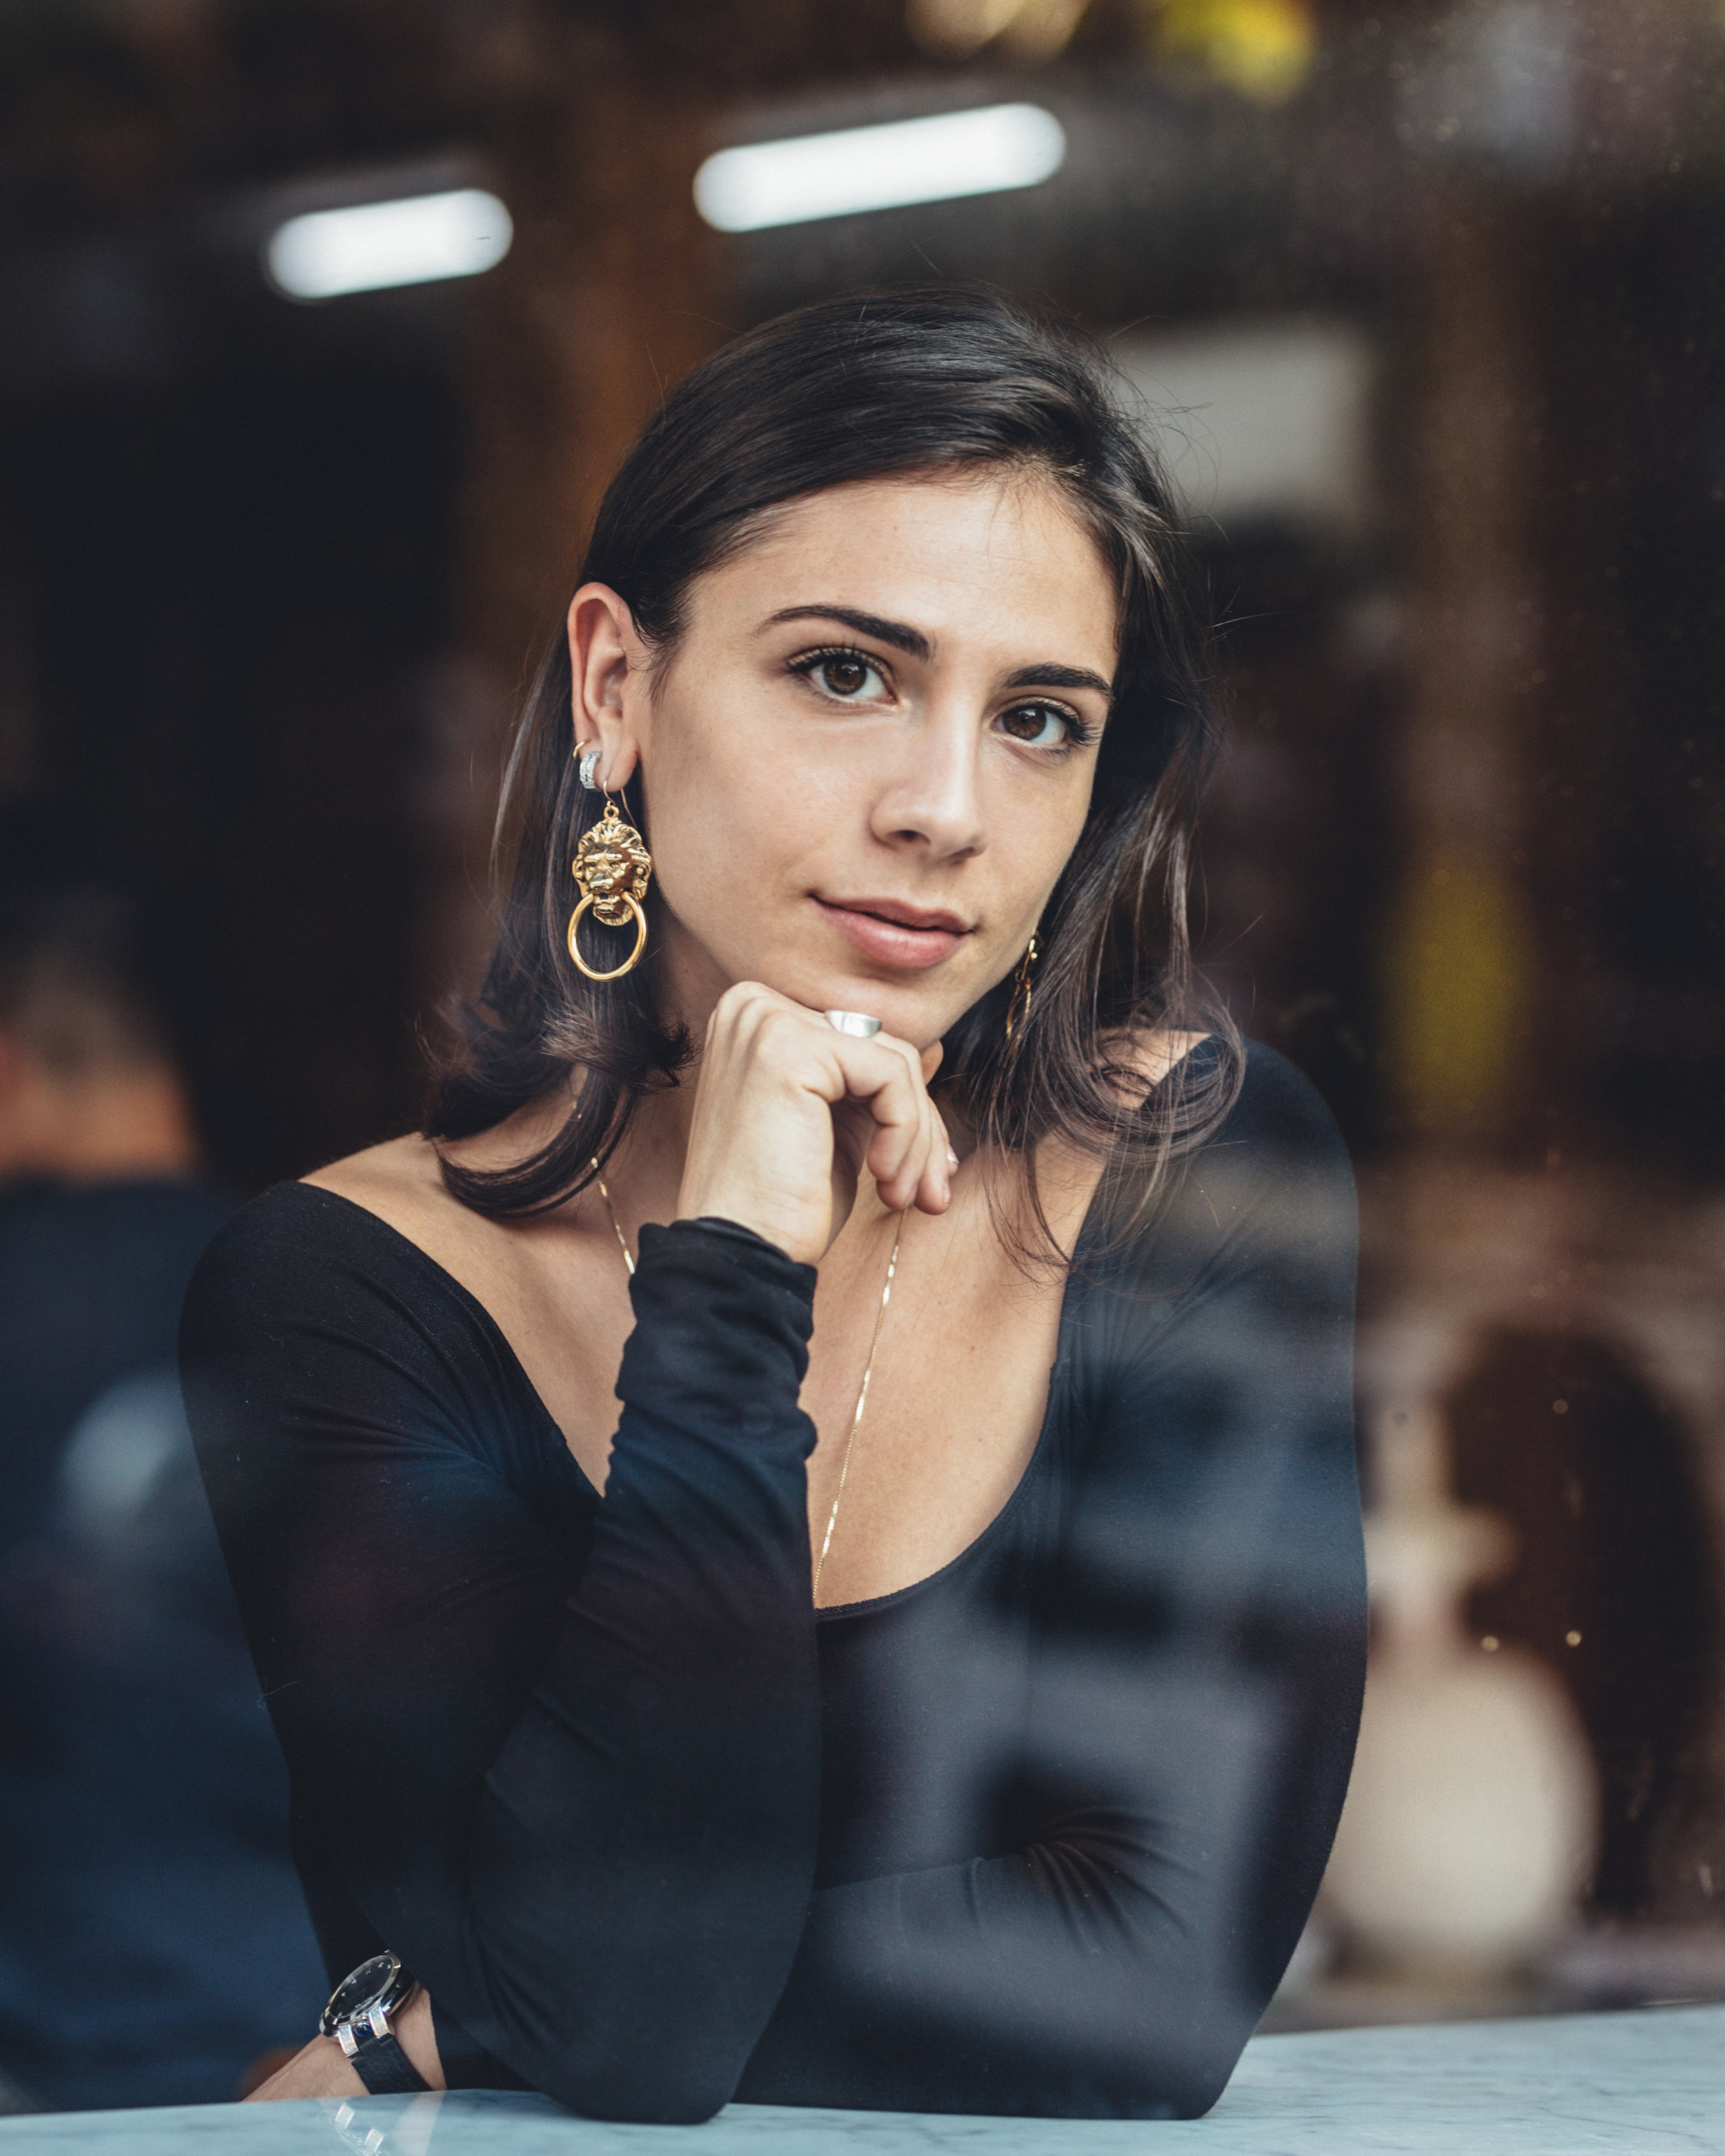 """ELISSA HERSH - """"The Dice"""" 